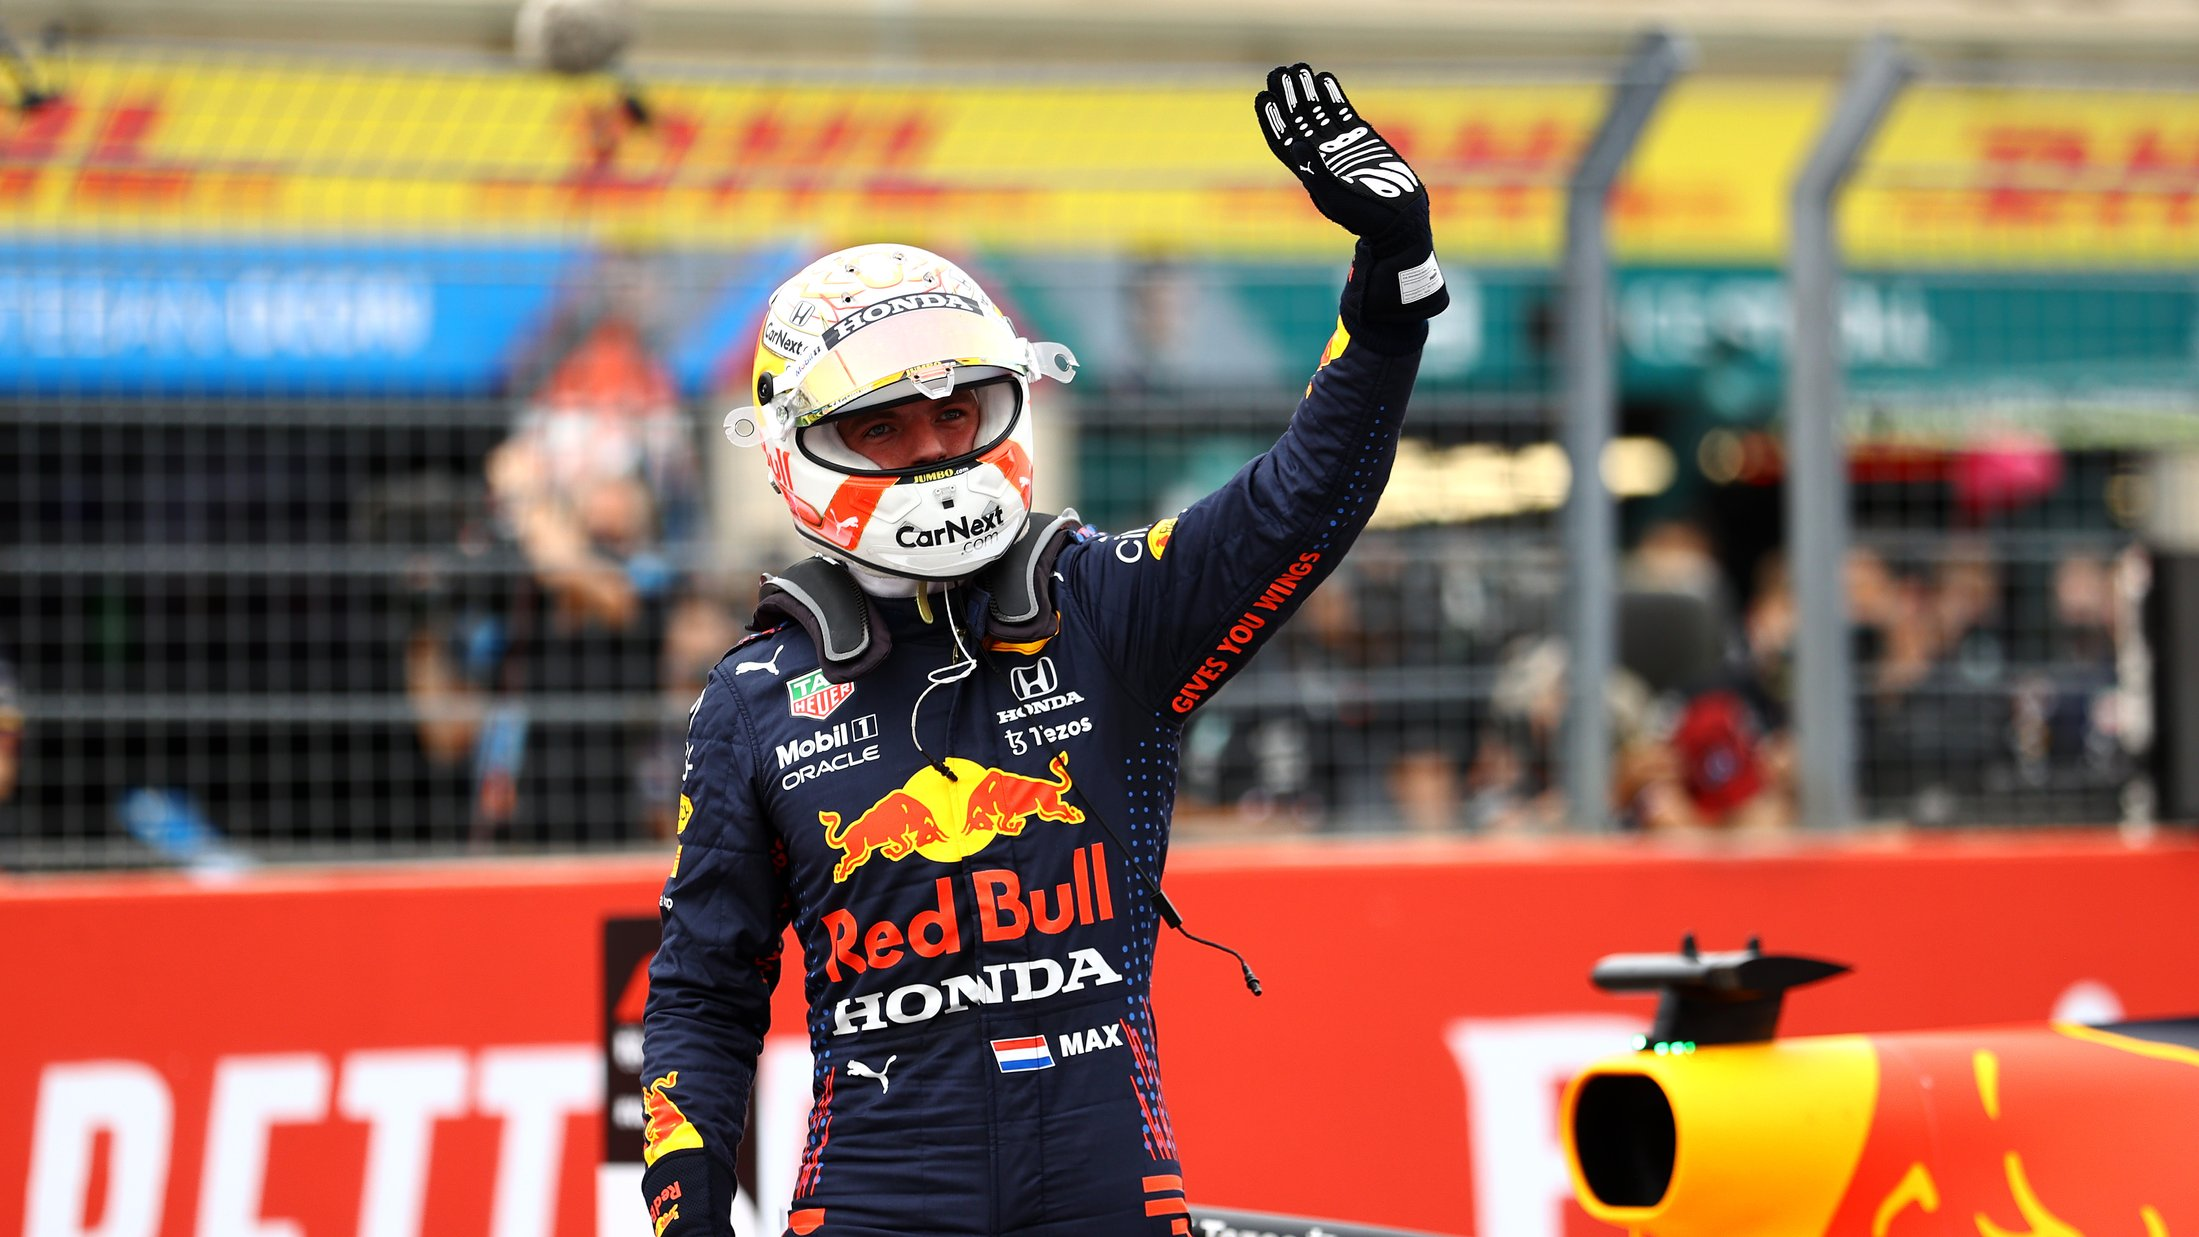 Qualifying report: Max Verstappen beats title rival Lewis Hamilton to pole in thrilling session at Paul Ricard